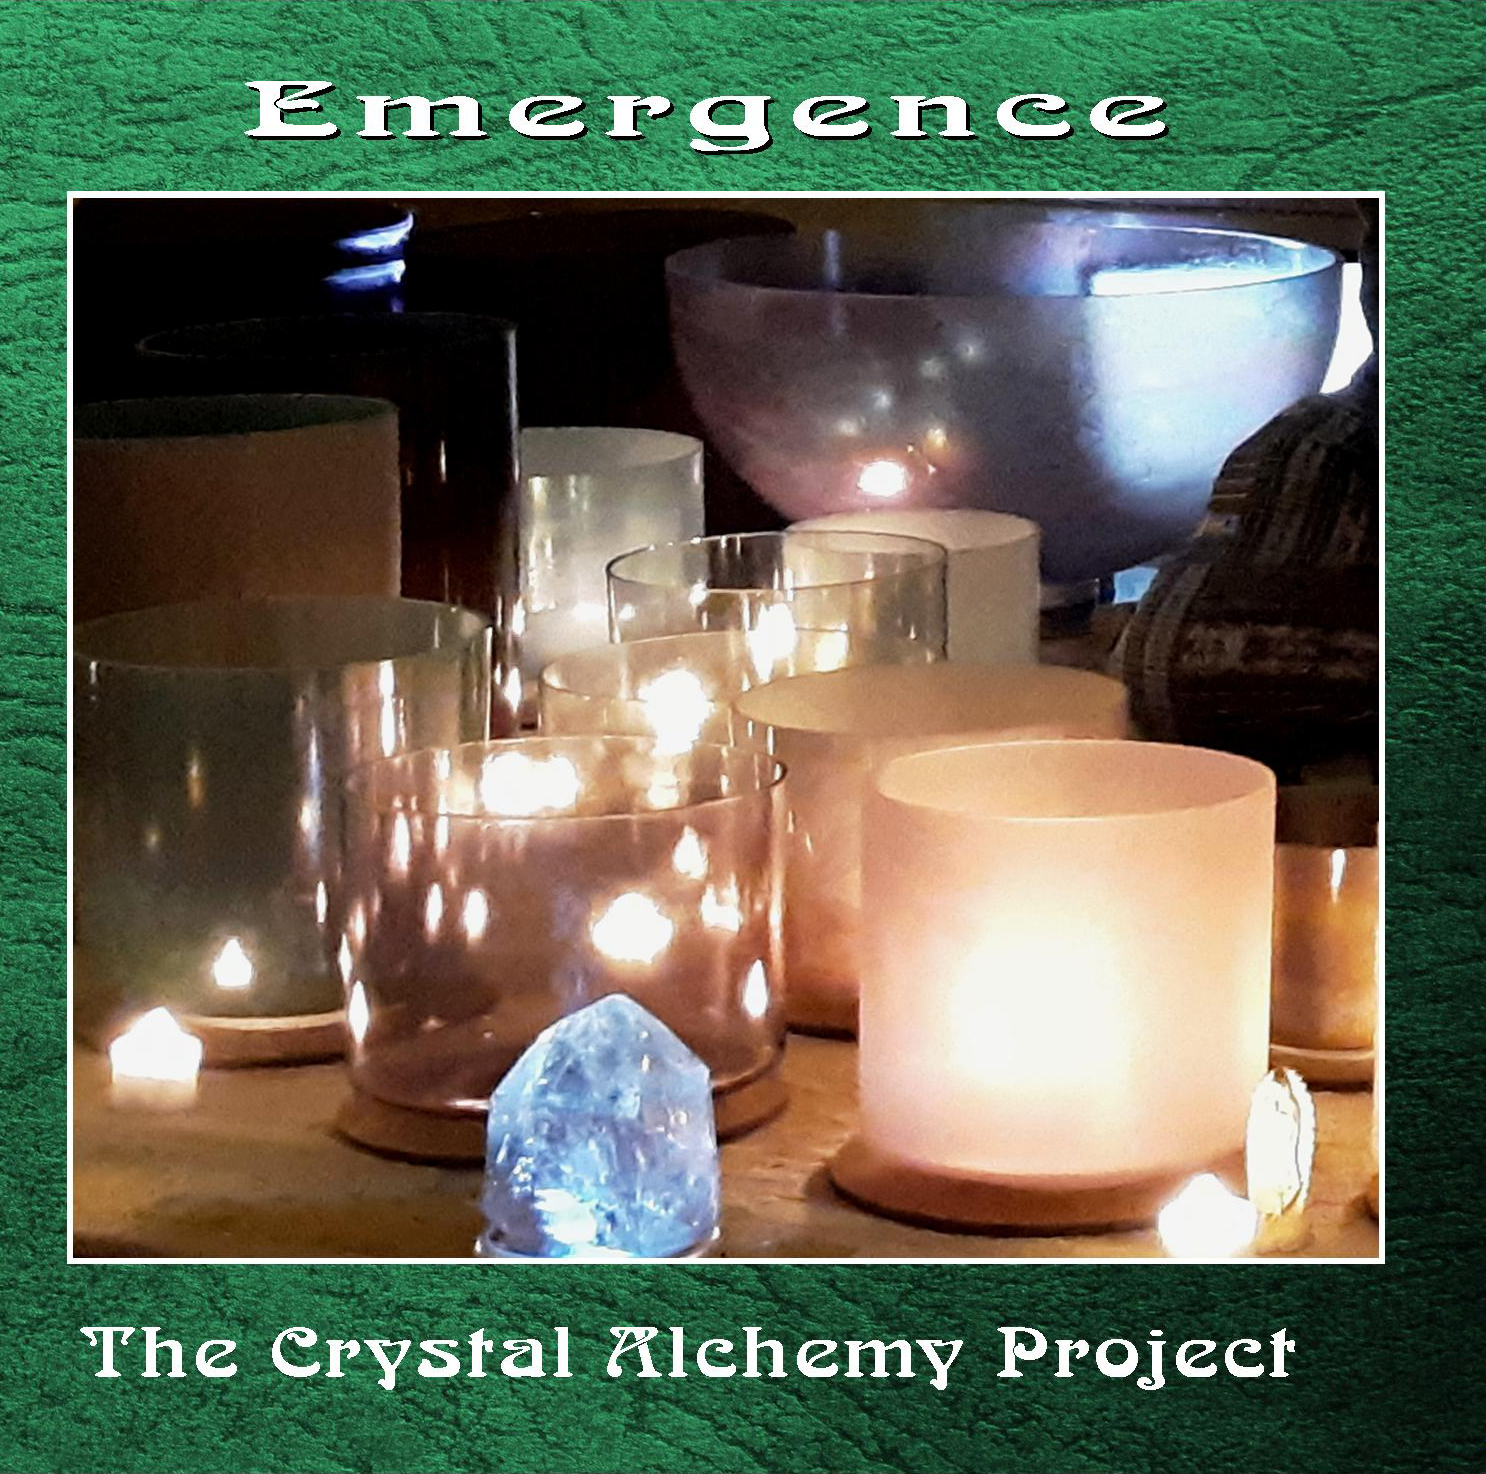 Emergence by the Crystal Alchemy Project